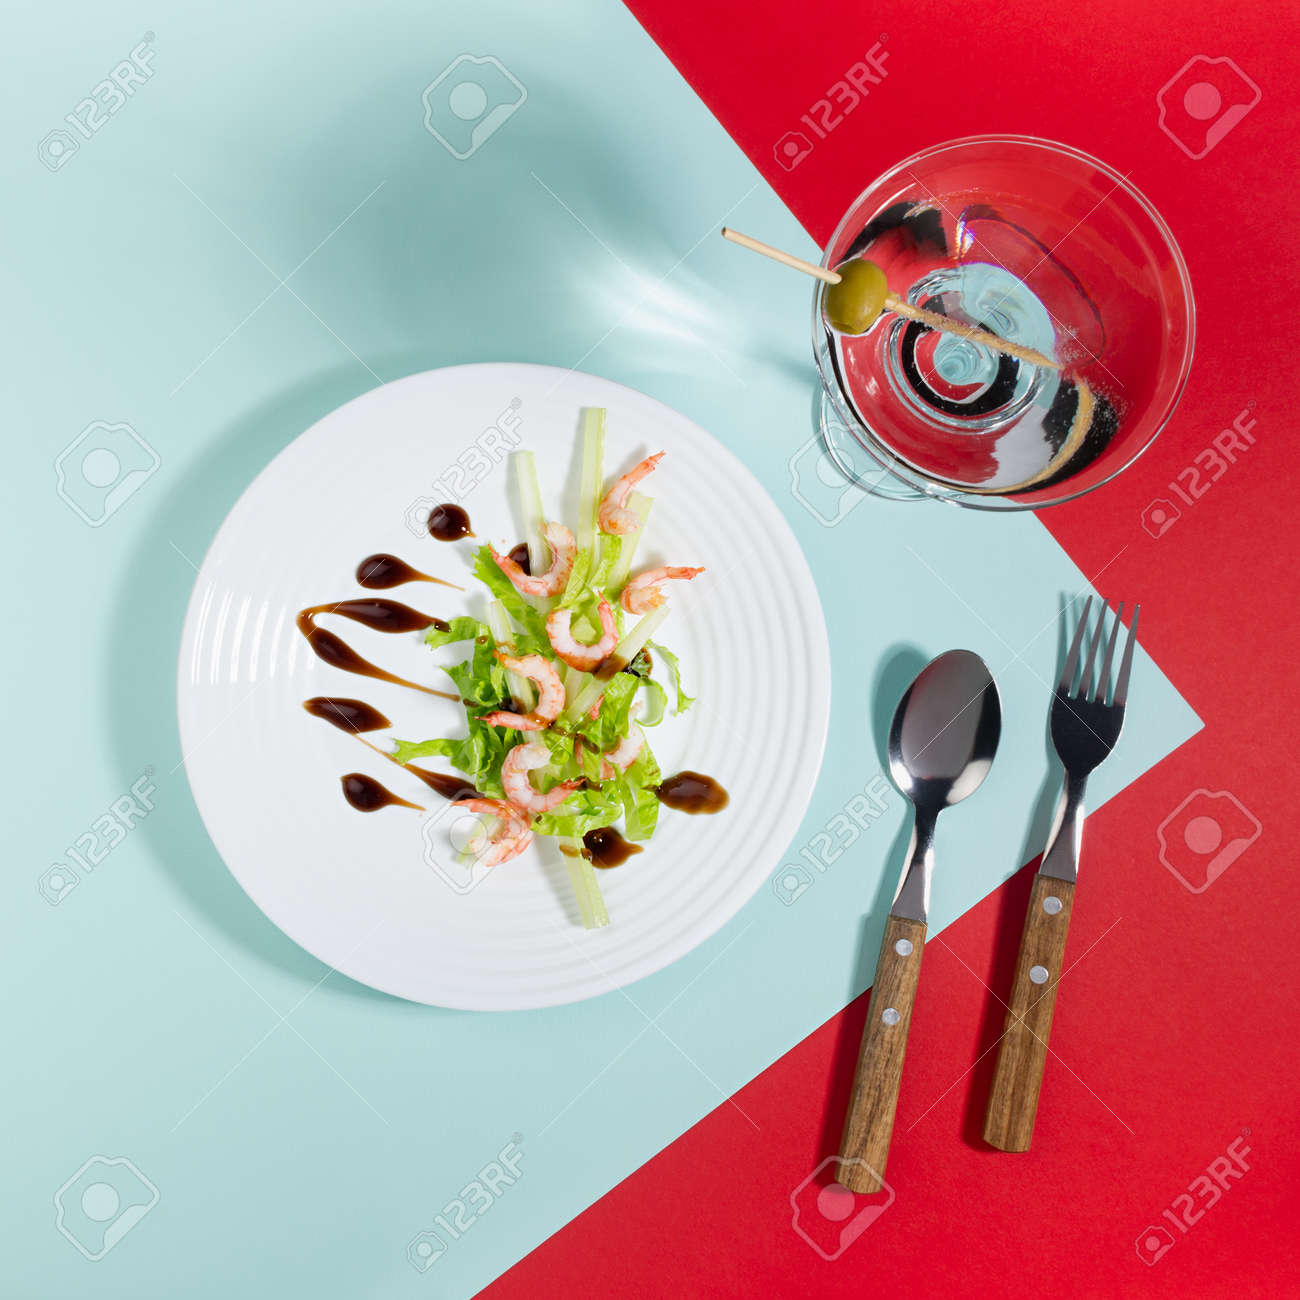 Spring seafood salat of shrimps, greens, celery, balsamic sauce with martini cocktail in white plate on red and minty color background with shadow in hard light, top view, square. - 168468916